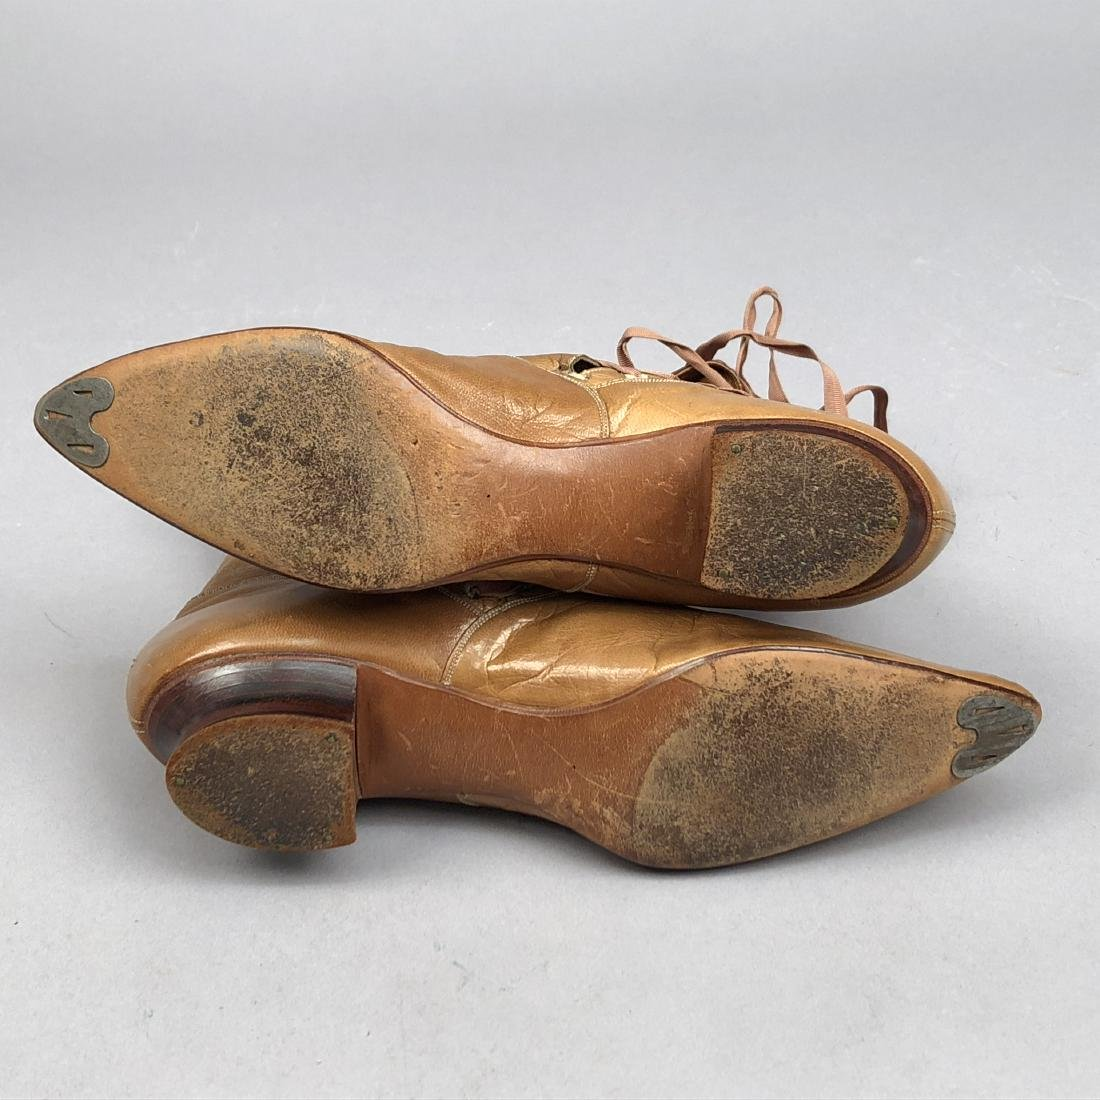 LADY'S SIDE-LACING BOOTS with TOPSTITCHING, 1890s - 4